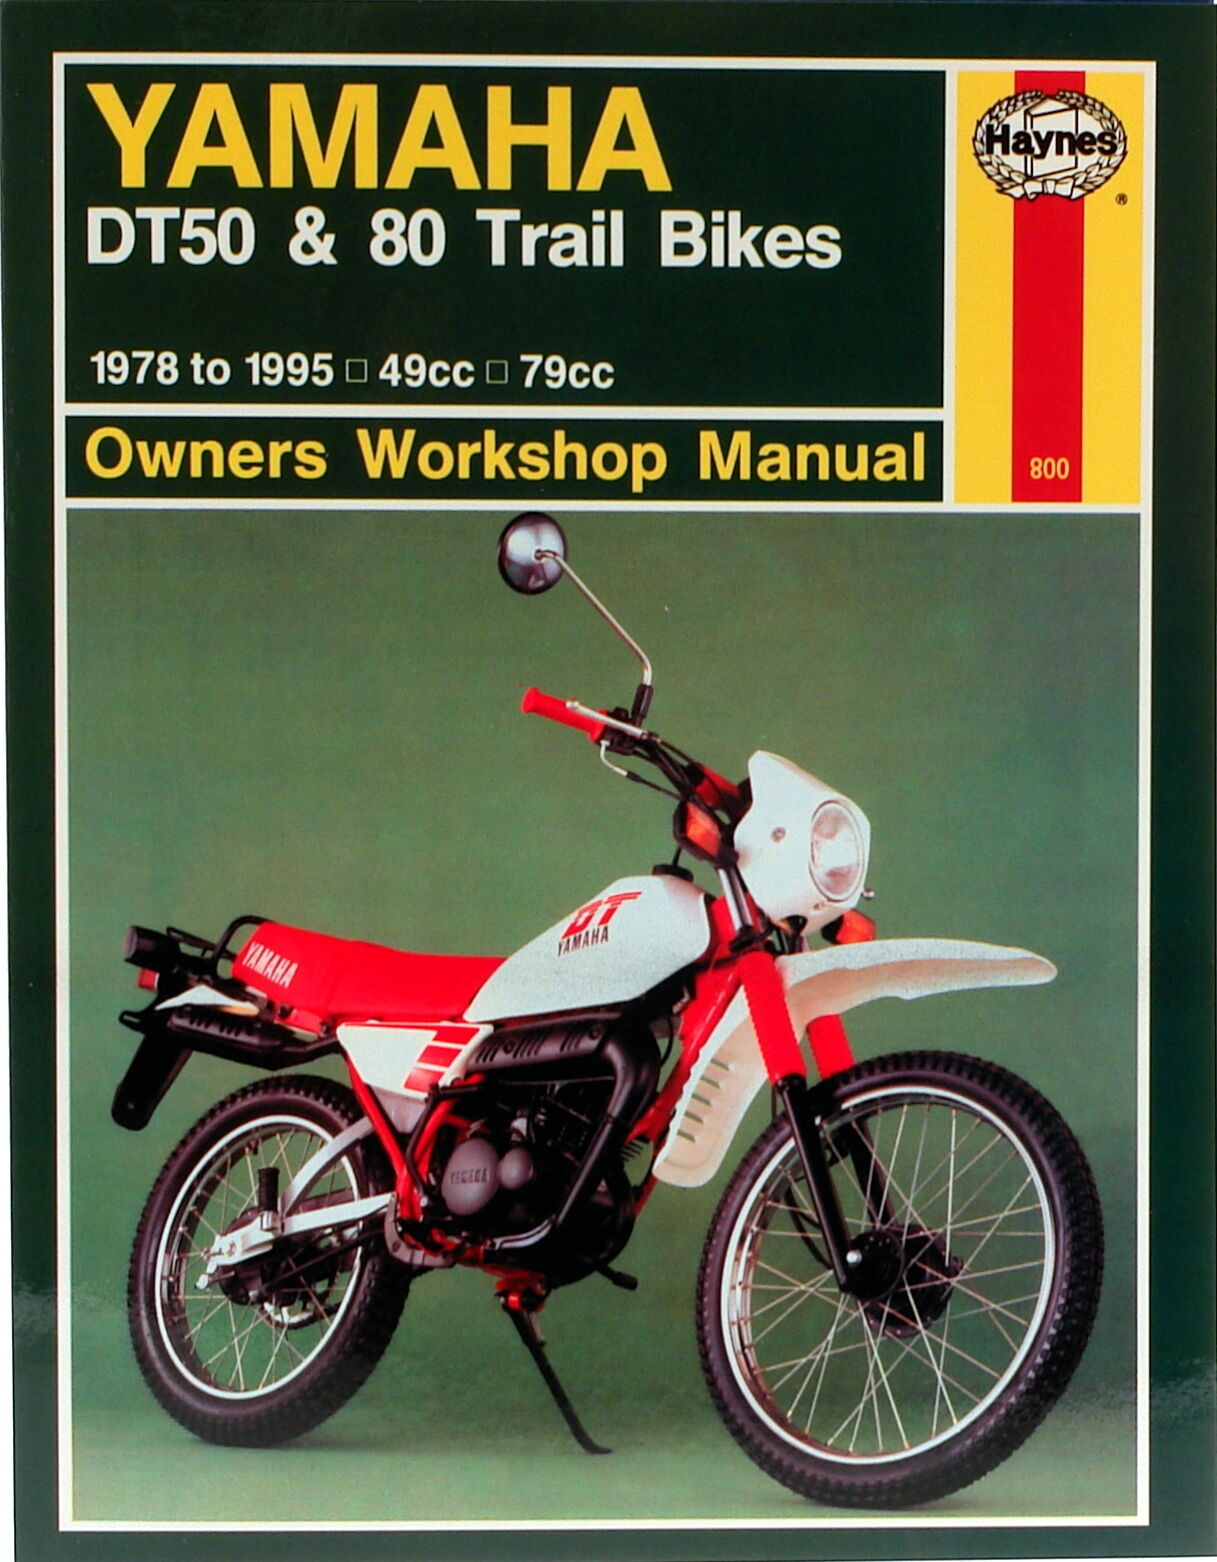 haynes workshop service repair manual yamaha dt50 dt80 trail bikes sukup wiring diagram 1 of 1only 1 available